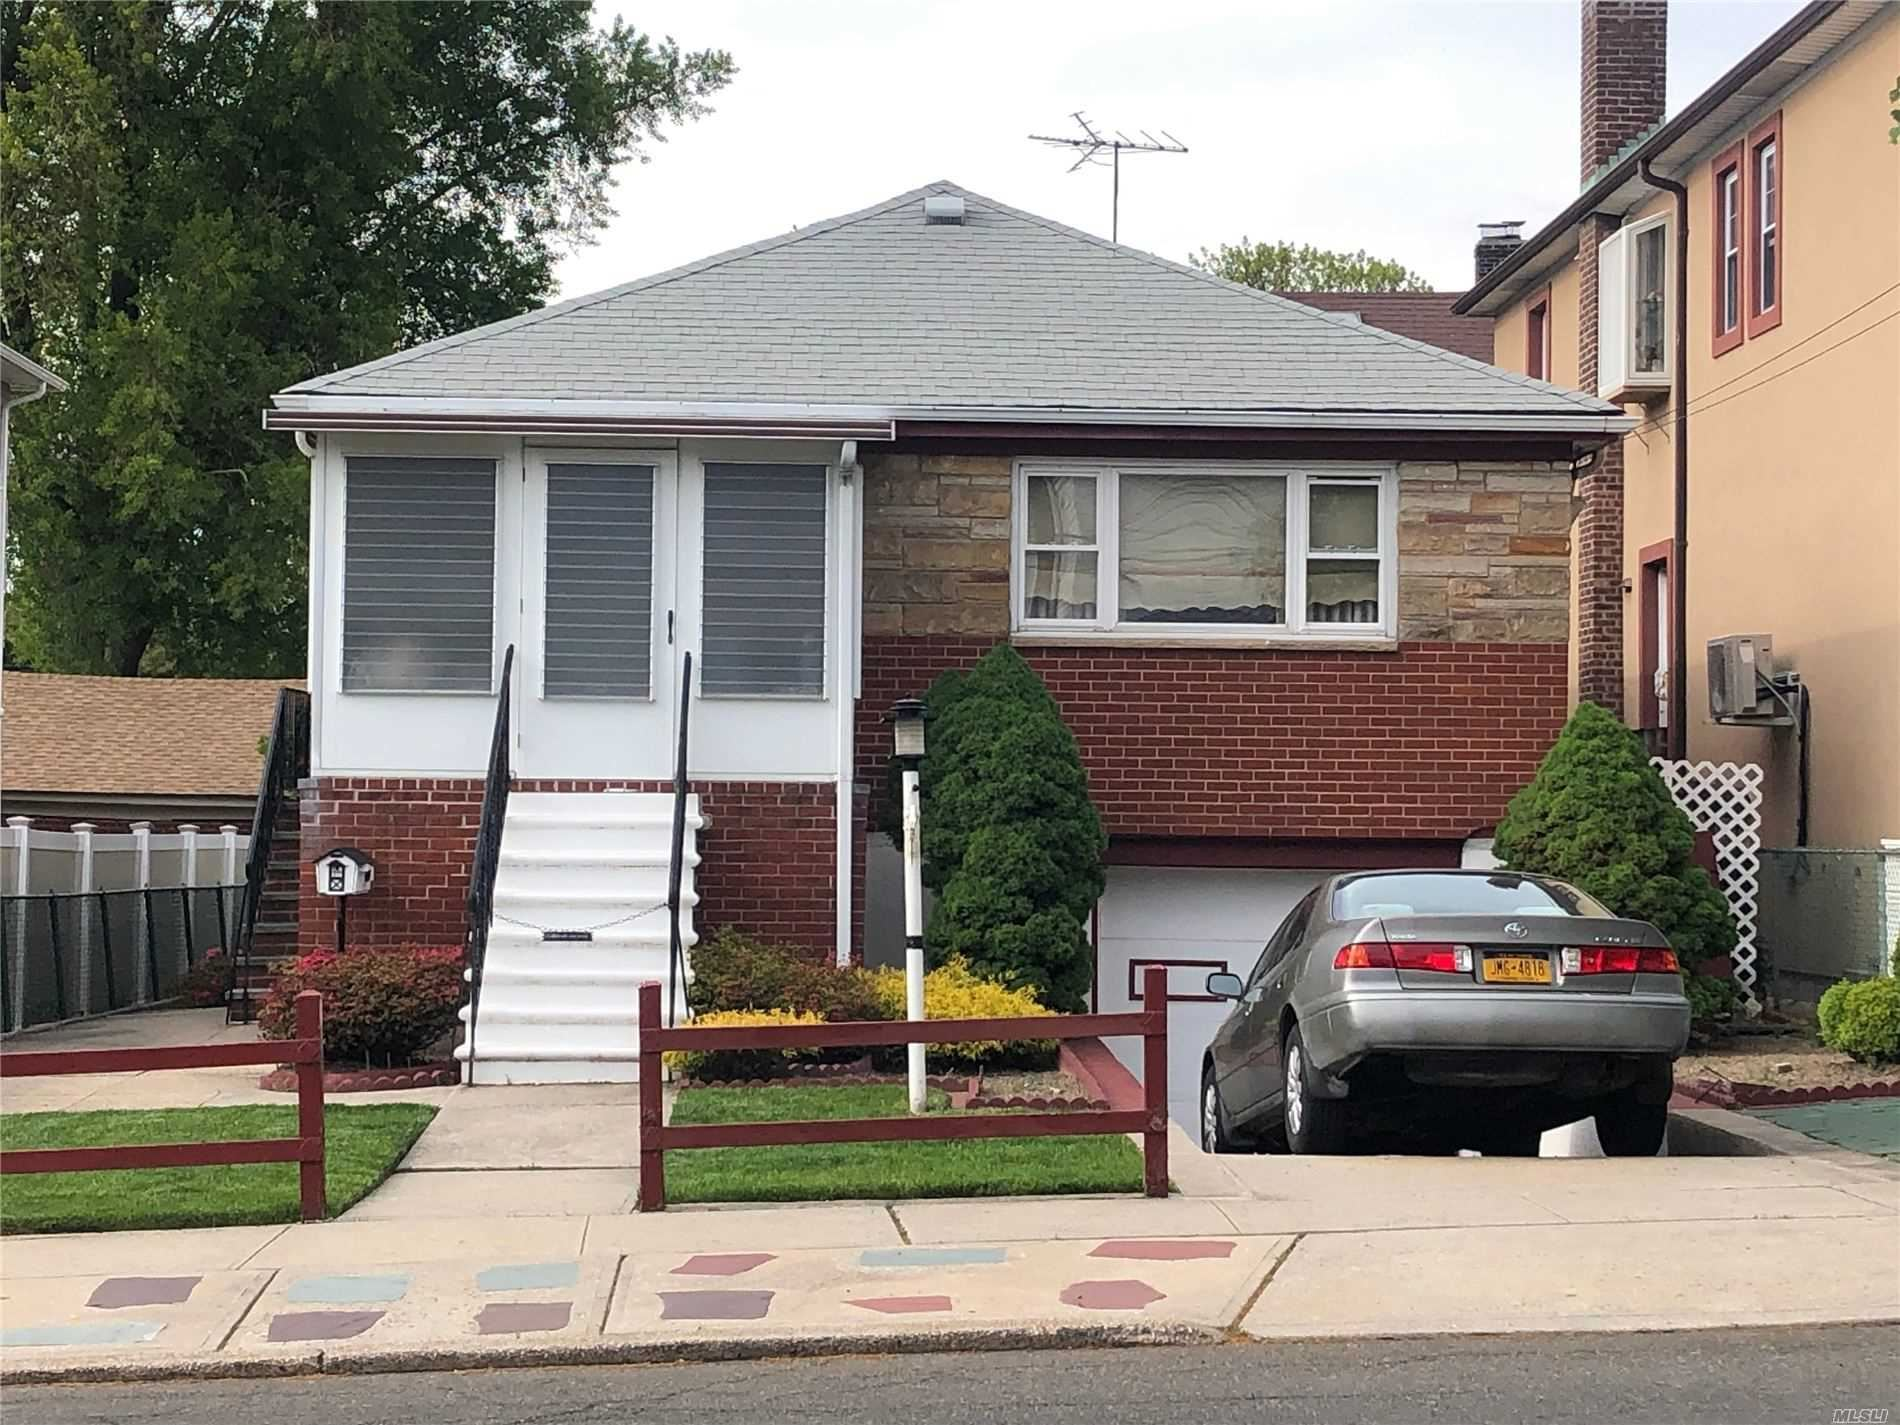 165-15 33rd Ave, Flushing, NY 11358 - MLS#: 3216027